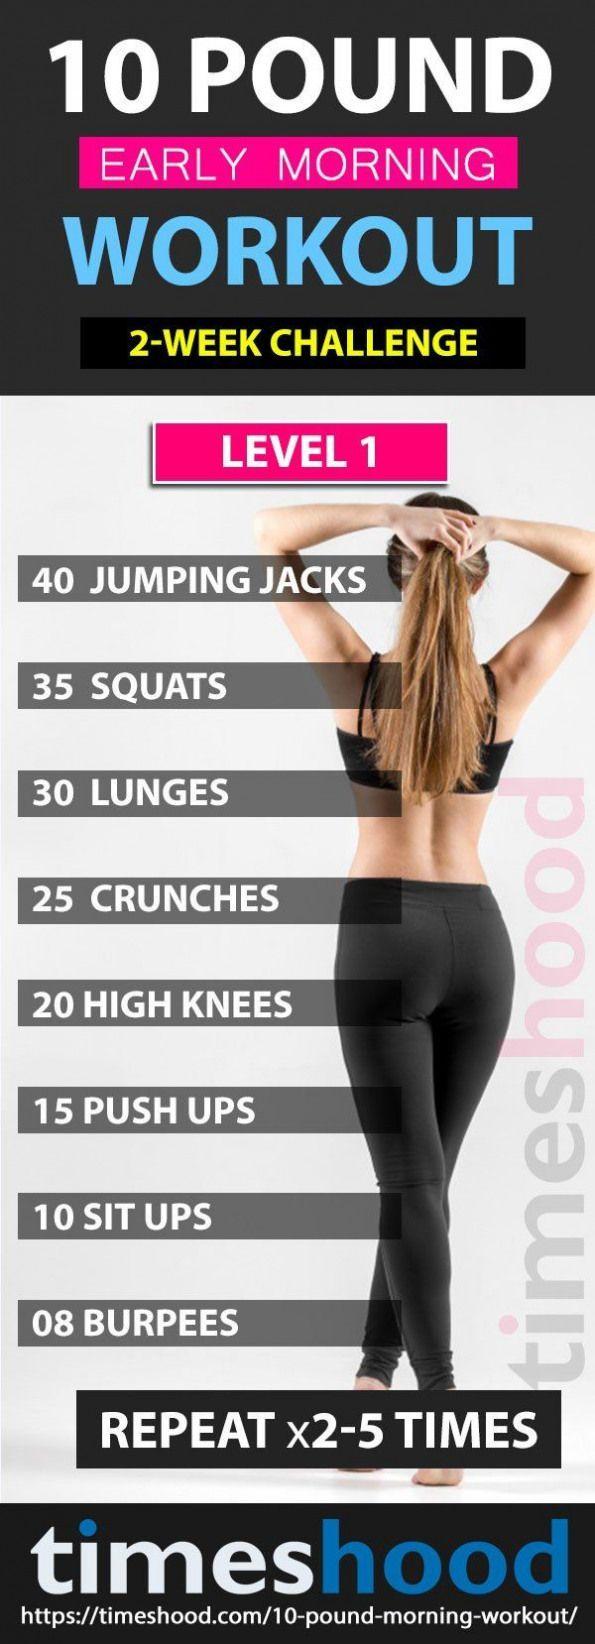 Photo of Lose 10 pounds in 3 weeks with this early morning workout plan. Best plan for beginner and advanced to lose 10 pounds in 2 weeks fast. Best weight loss tips for women. Fat burning workouts for overweight women. 10 pound workouts plan. Lose 10 pound mornin